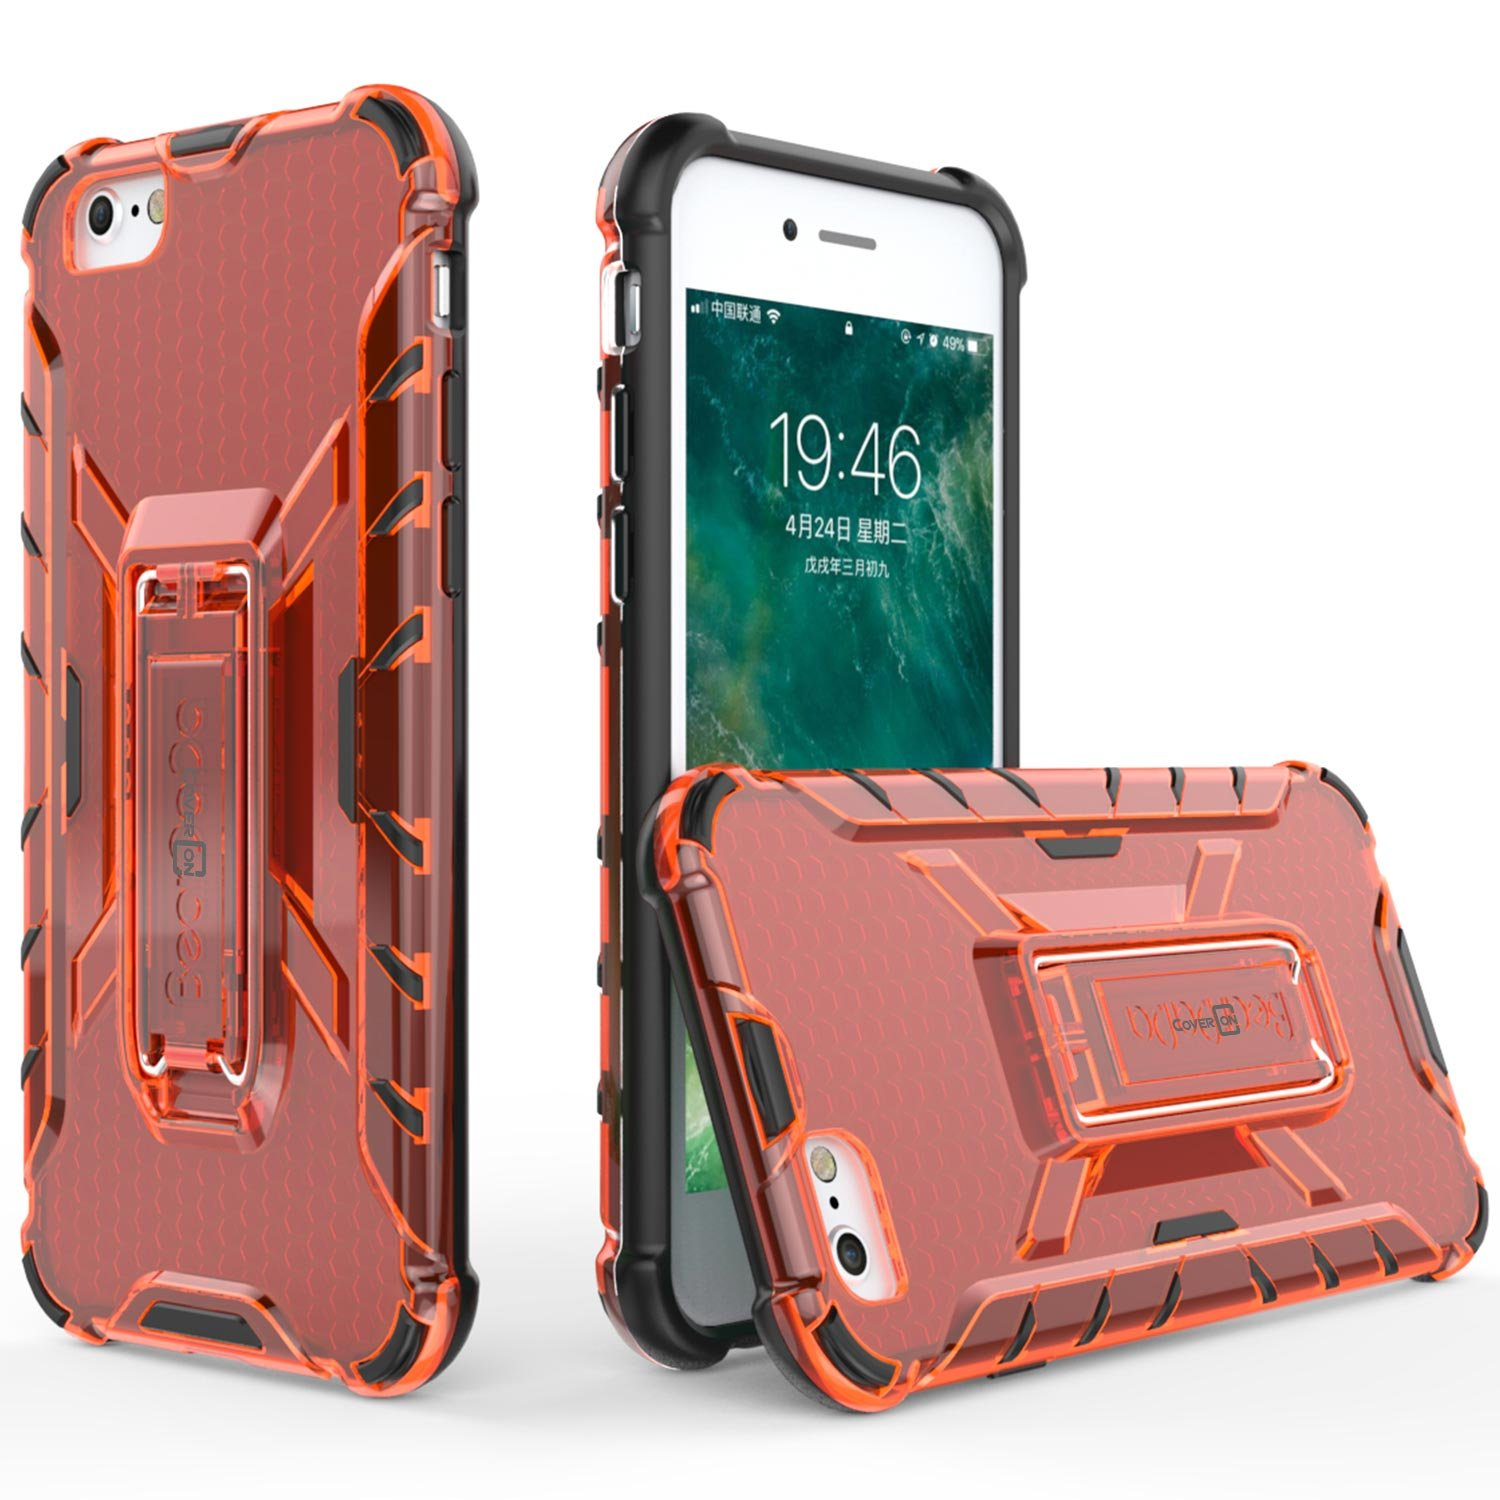 CoverON [Hive Series] Fit iPhone 8 Kickstand Case, iPhone 7 Kickstand Case, Slim Kickstand Phone Cover with See Through Hard Back and TPU Bumpers - Red with Black Bumpers